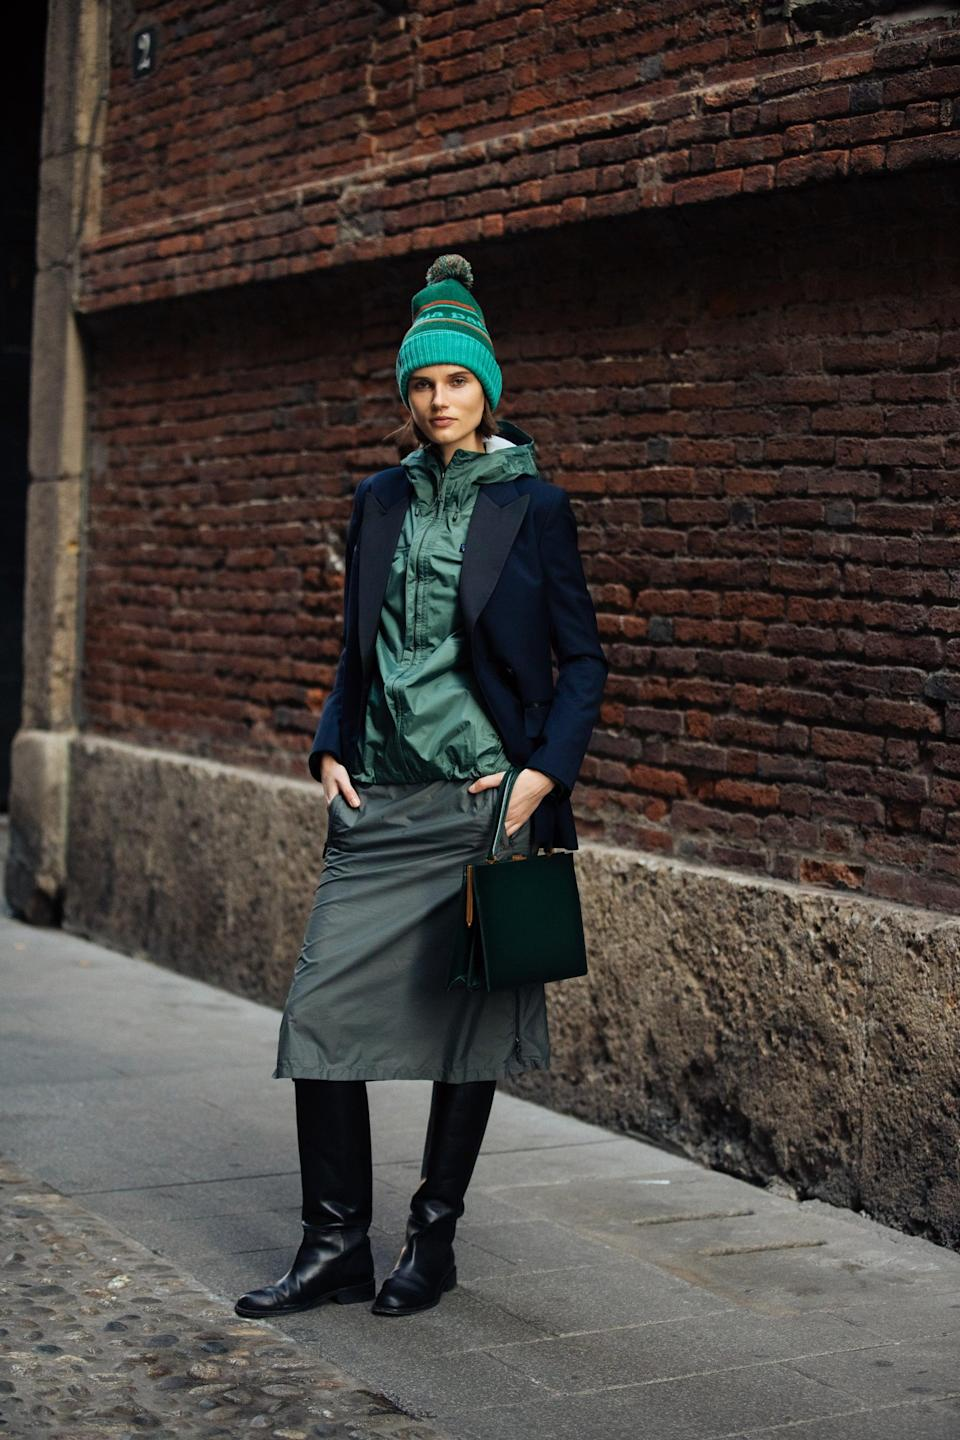 <p>If you're mixing styles - say something tailored with something sporty - a beanie is a nice way to bridge the gap. Try layering a hoodie underneath a blazer to start; then pair with trousers or a skirt. Capping it off with a beanie ties together the more formal pieces with the casual and gives it all a cool, intentional effect. </p>